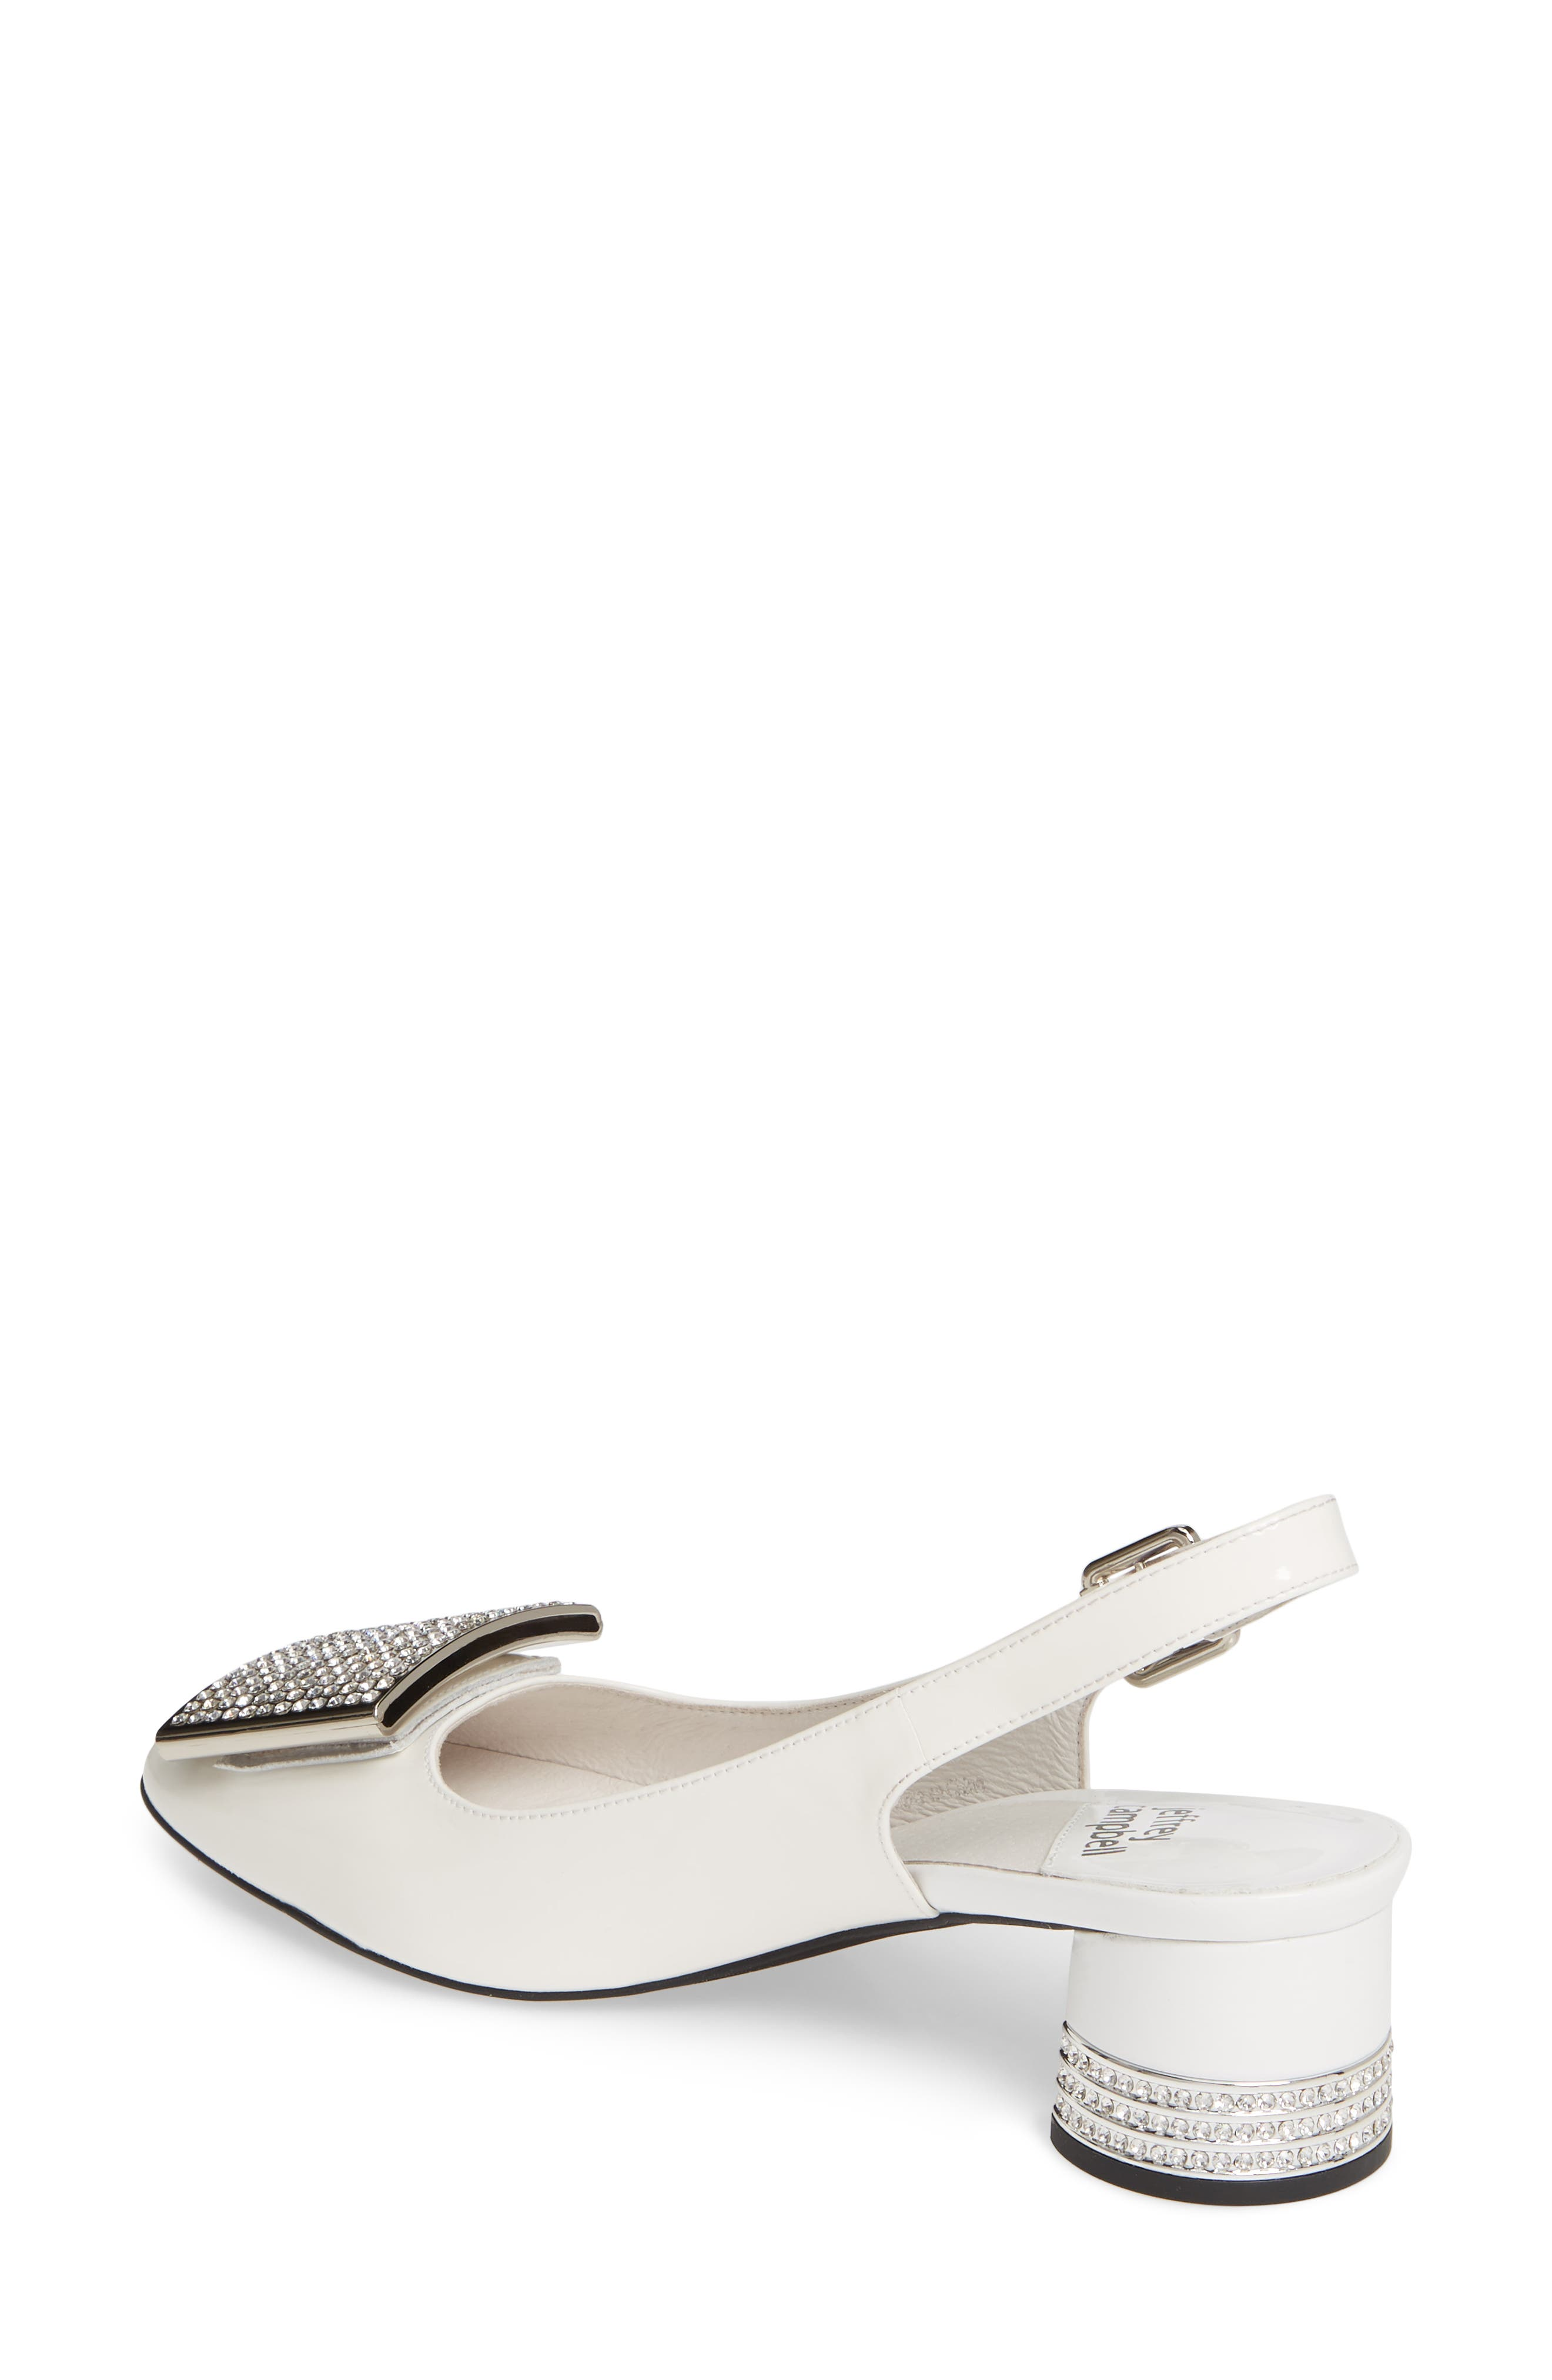 JEFFREY CAMPBELL, Billion Jewel Slingback Pump, Alternate thumbnail 2, color, WHITE PATENT LEATHER/ SILVER